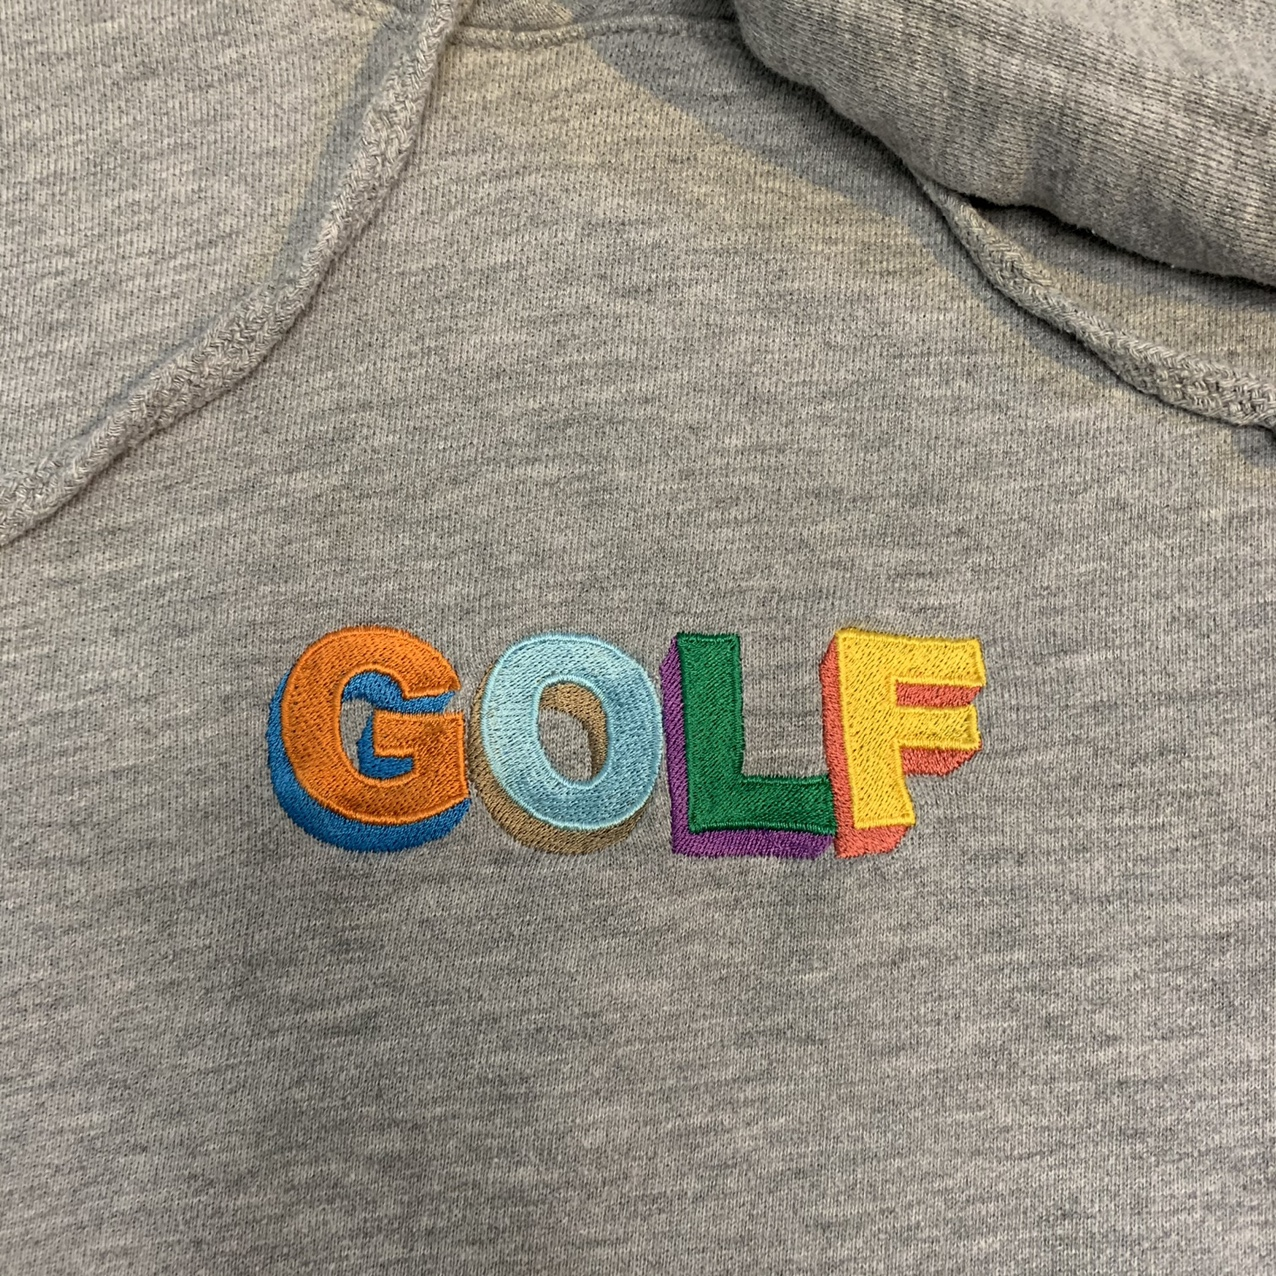 Product Image 2 - GOLF hoodie there is a small